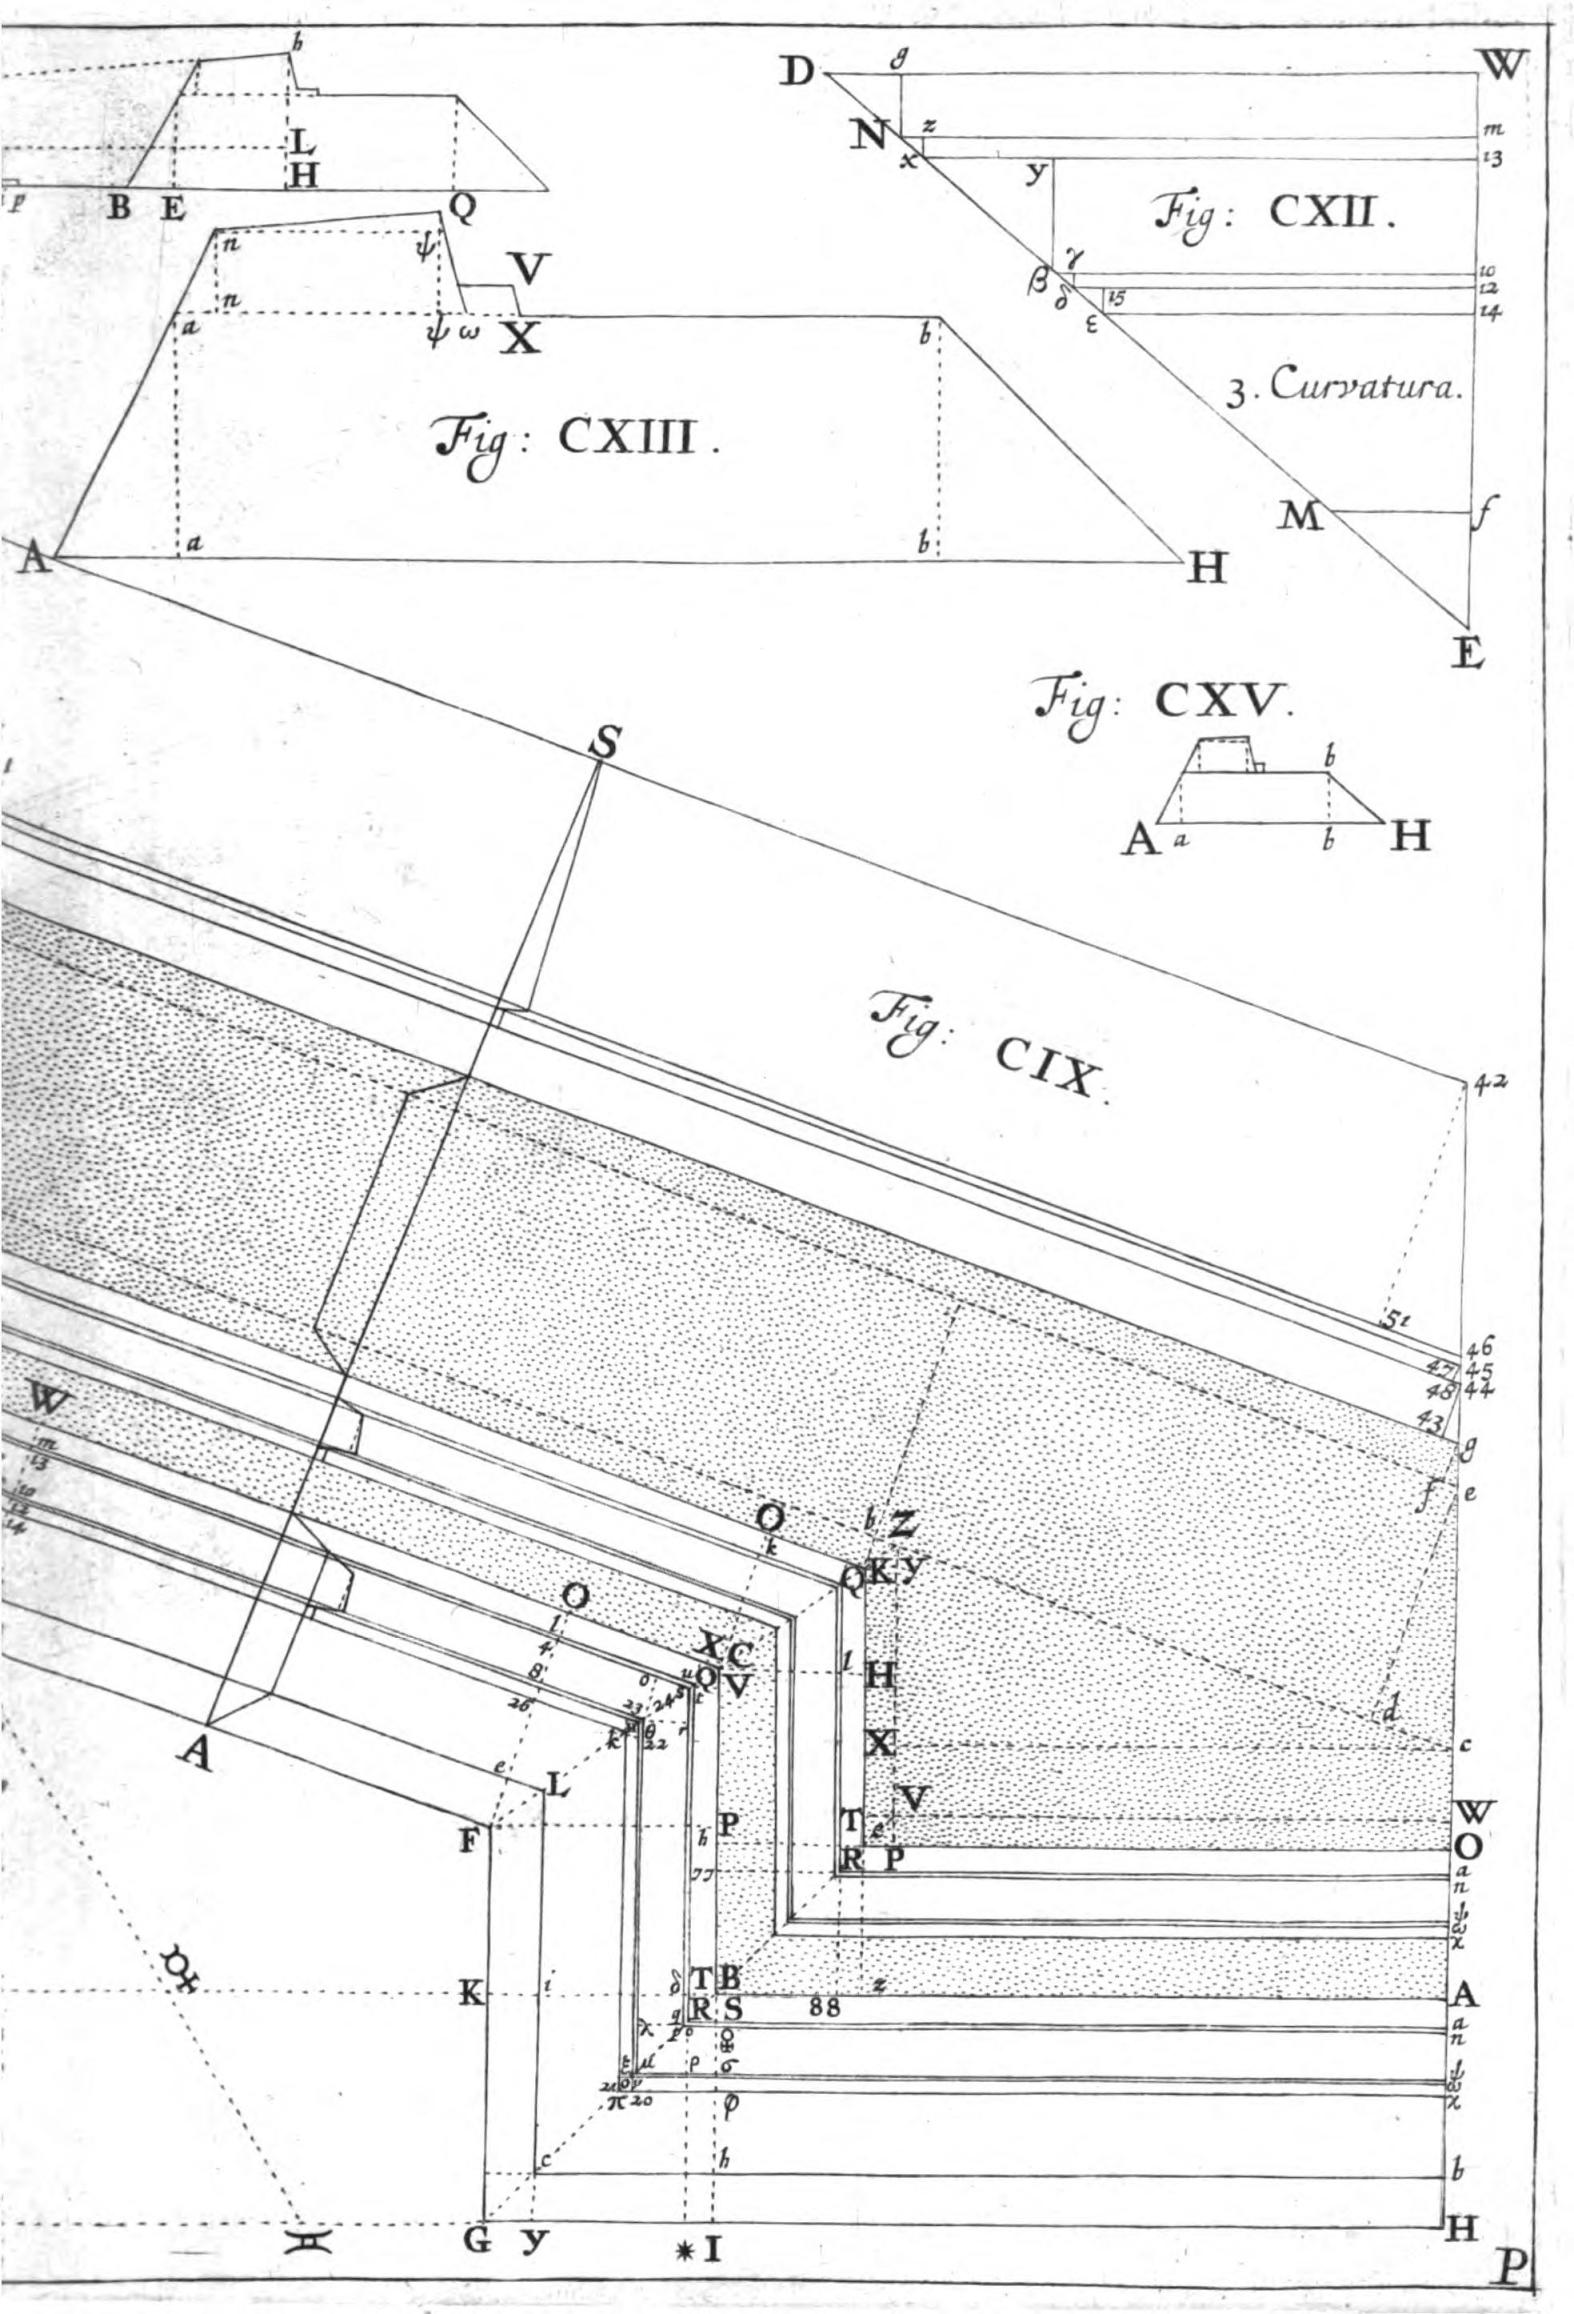 Military Engineering And Architecture In Mid 17th Century